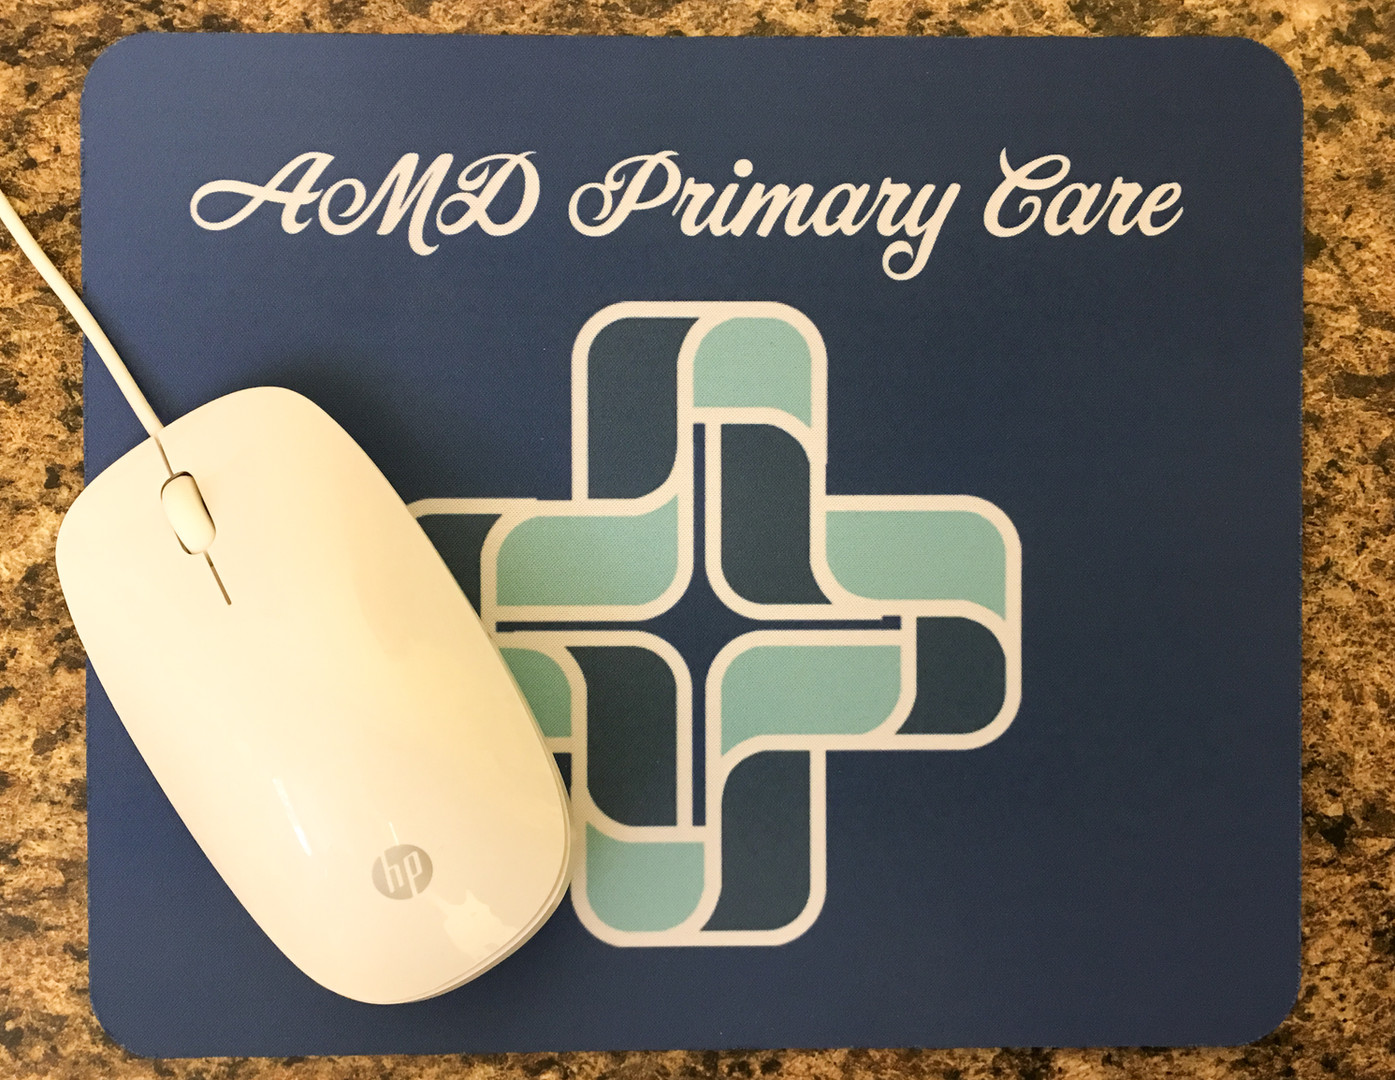 AMD Primary Care